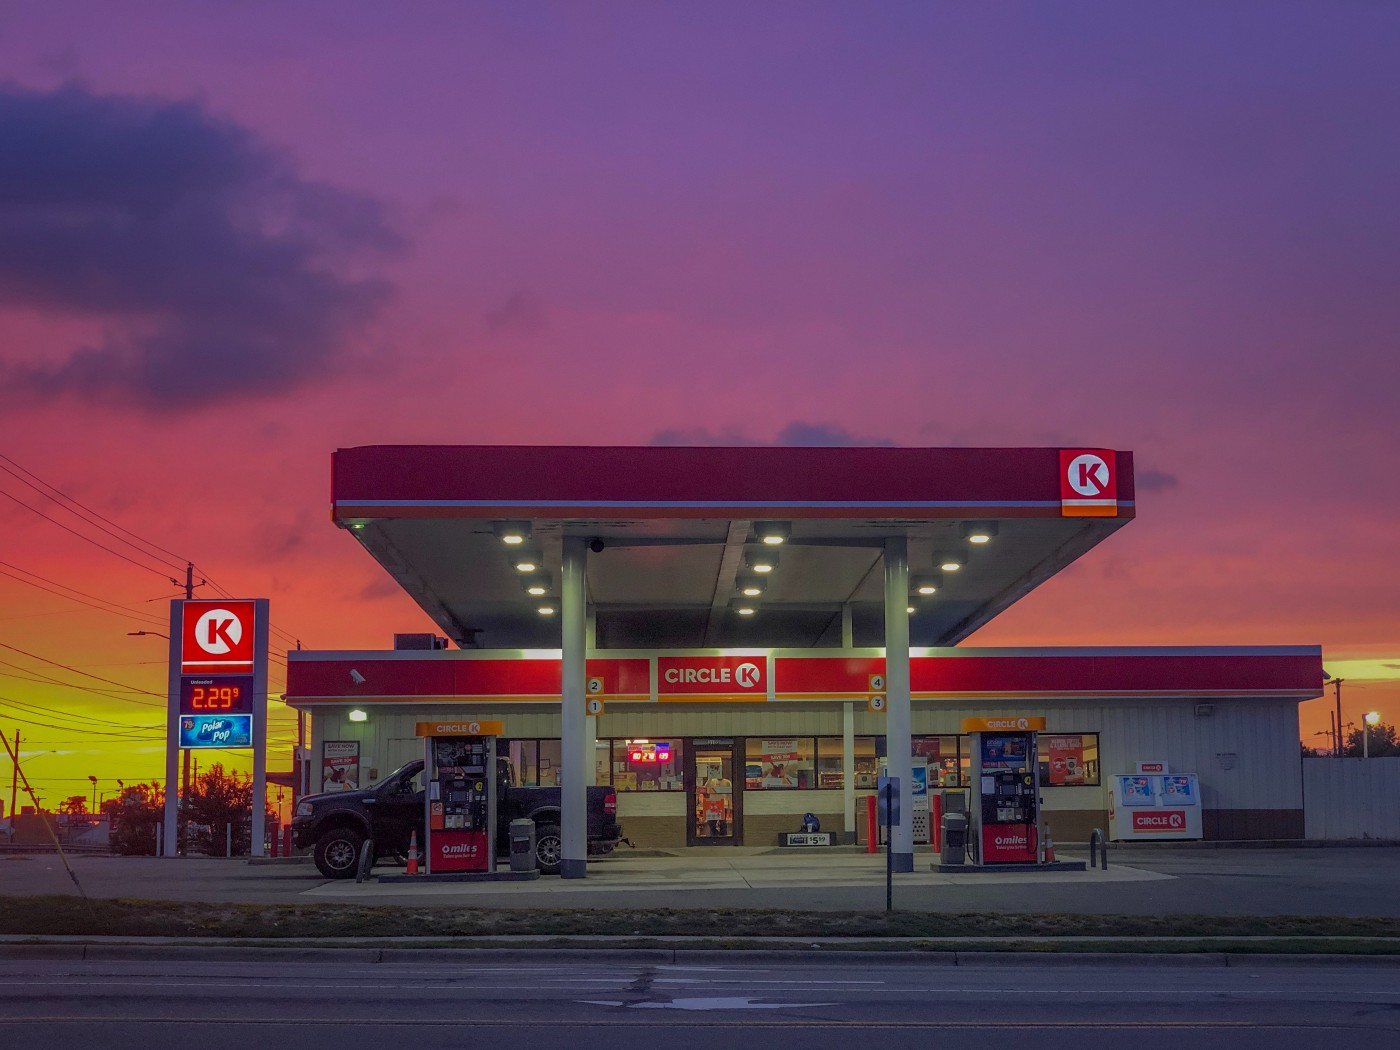 Photo of a Circle K glowing with the light of a beautiful sunset behind it